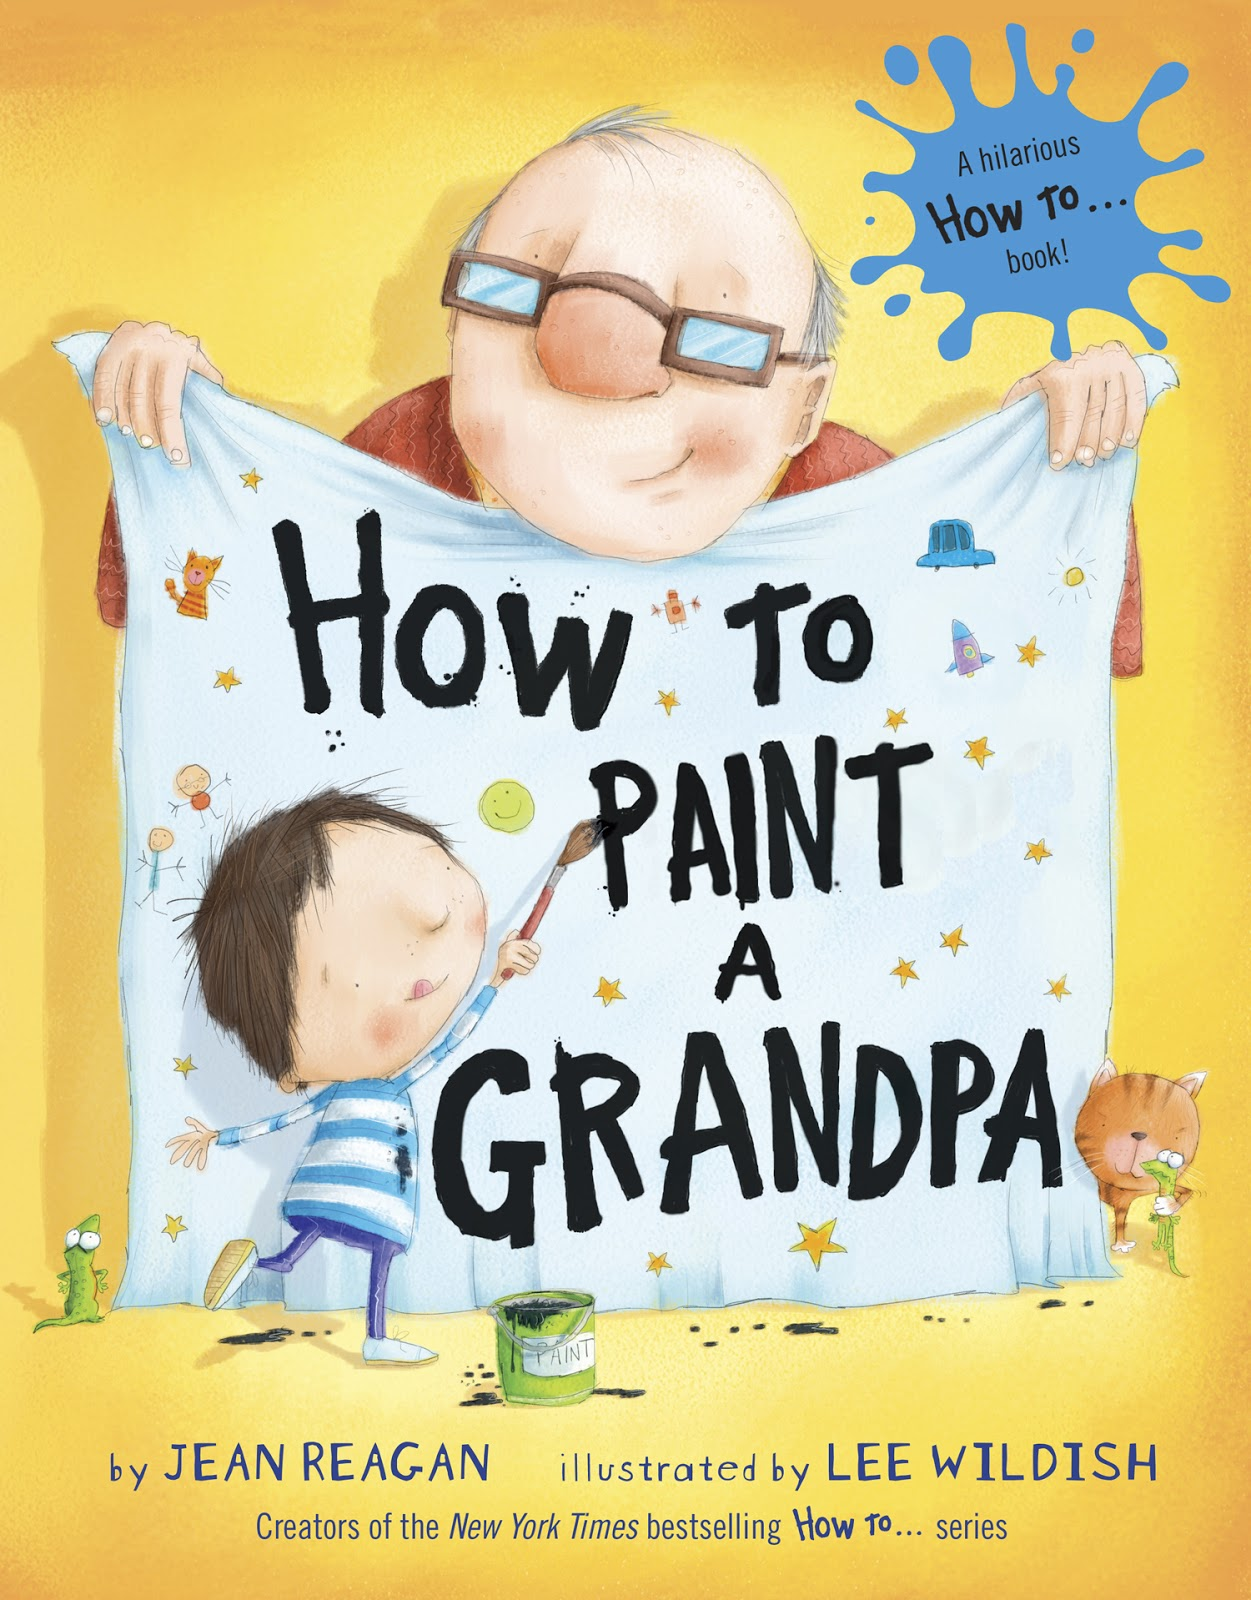 literary hoots fool s library display 11 funny book covers how to paint a grandpa pdf based on this book